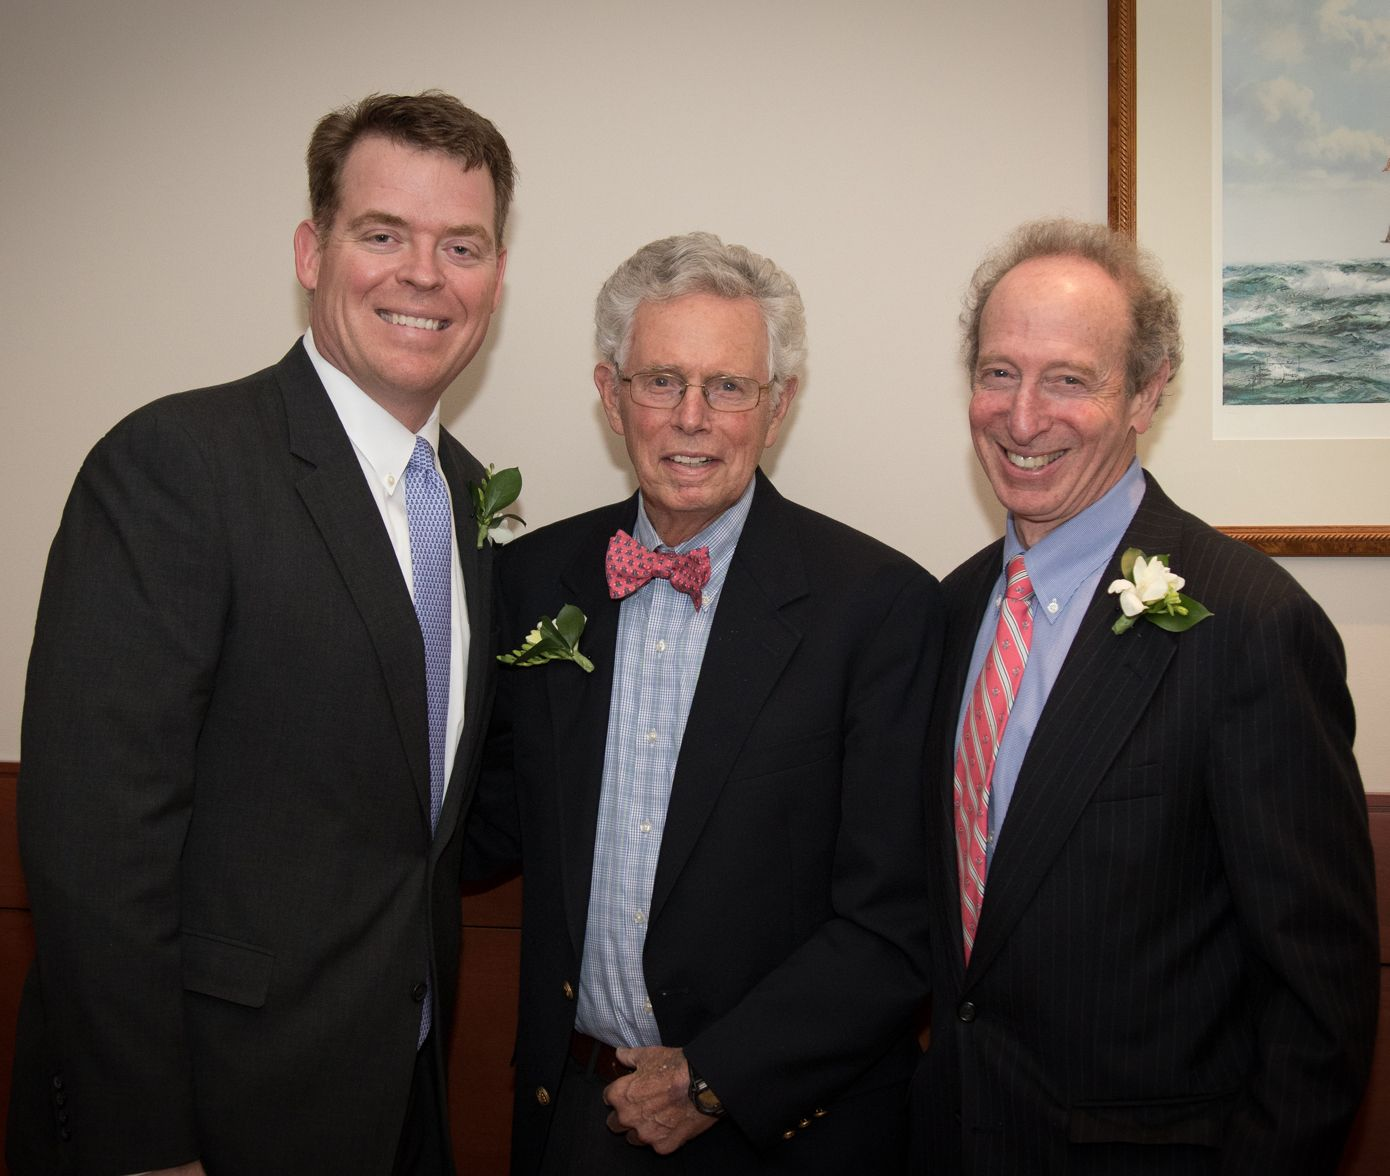 Current Head of School Greg Schneider with former Belmont Hill Heads of School Chris Wadsworth and Rick Melvoin.